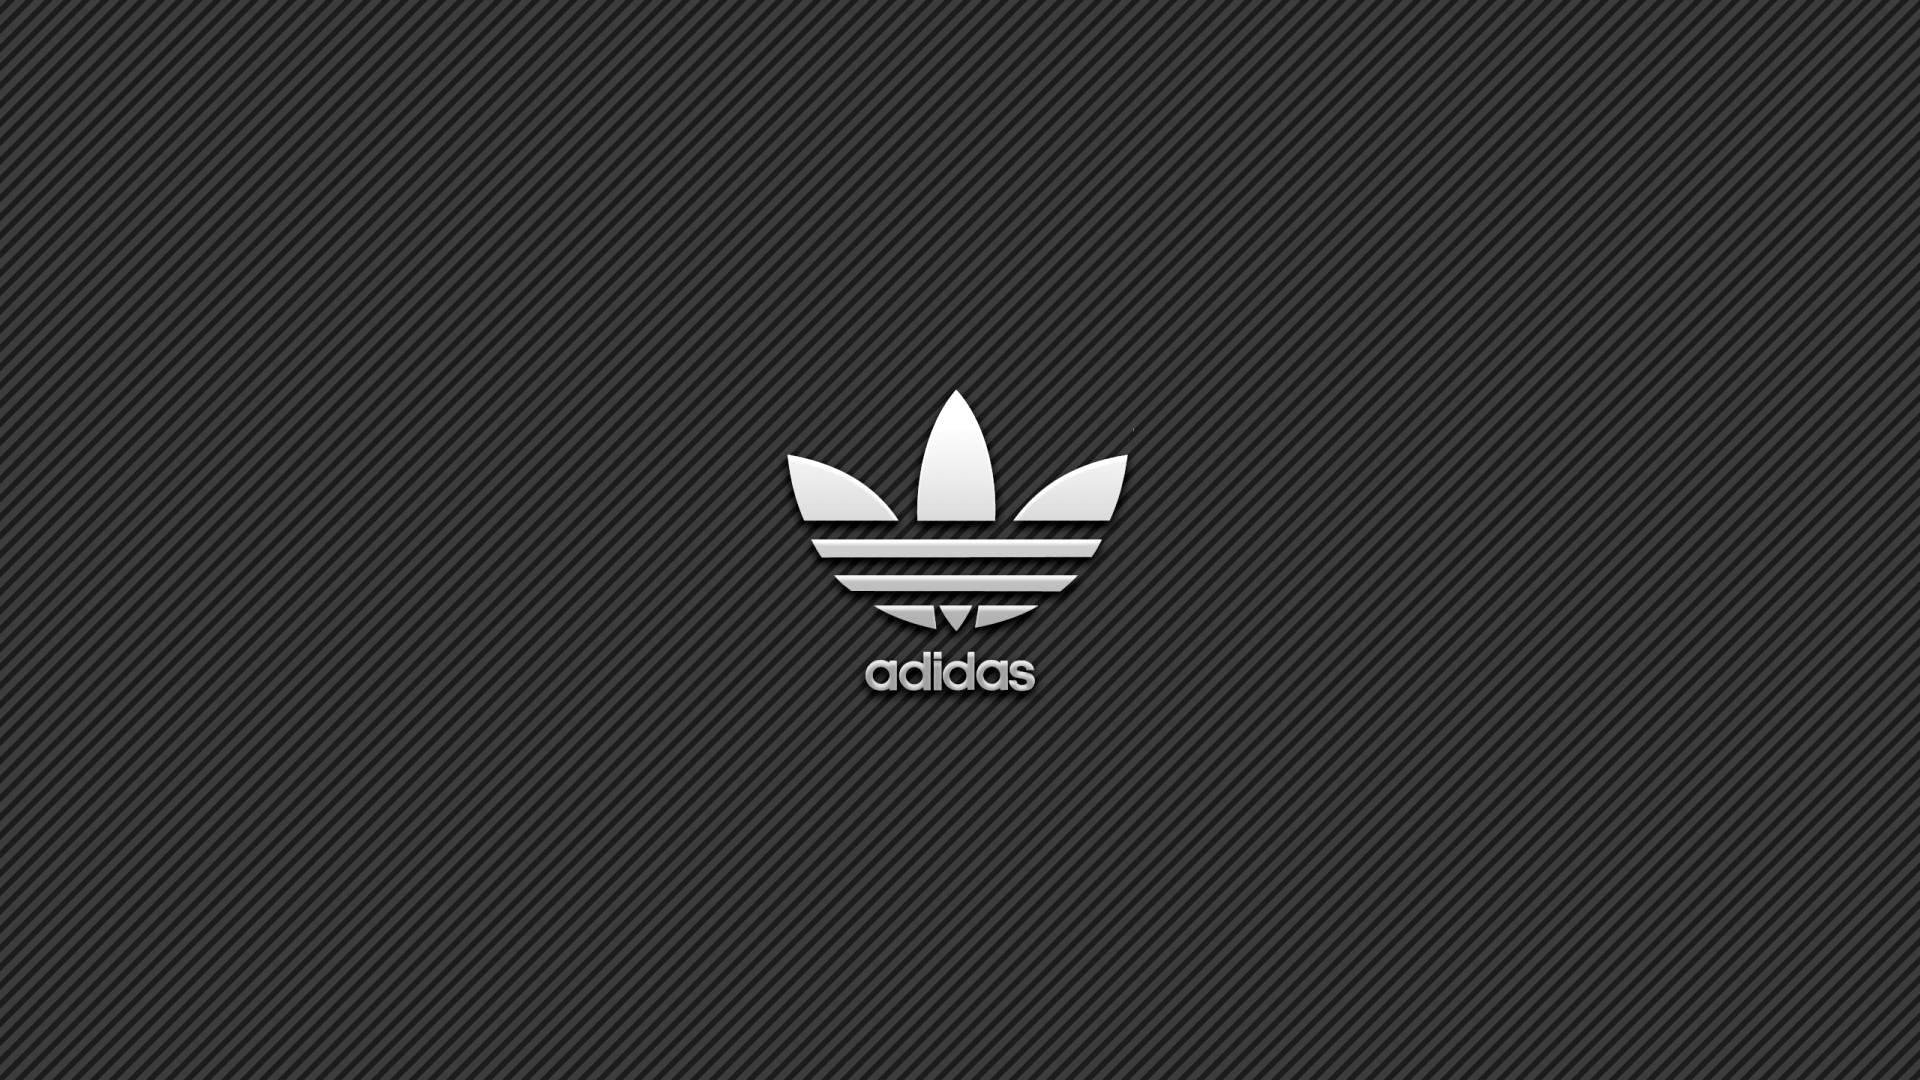 31 Adidas HD Wallpapers Background Images 1920x1080